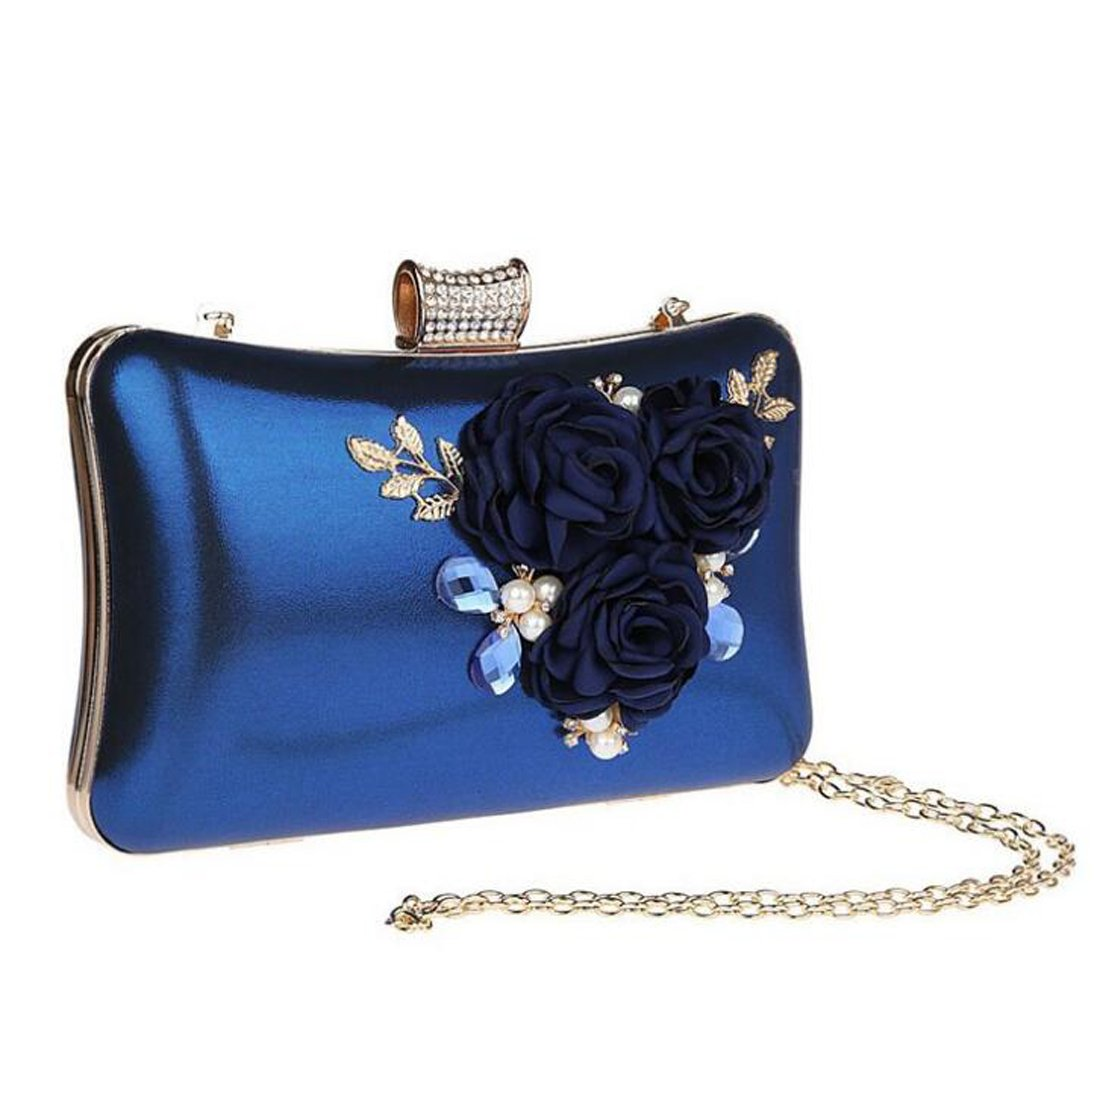 7110e52ddd4ad EPLAZA Women Large Capacity Flora Evening Clutch Bags Wedding Party Purse  Handbags Wallet (blue)  Amazon.co.uk  Clothing